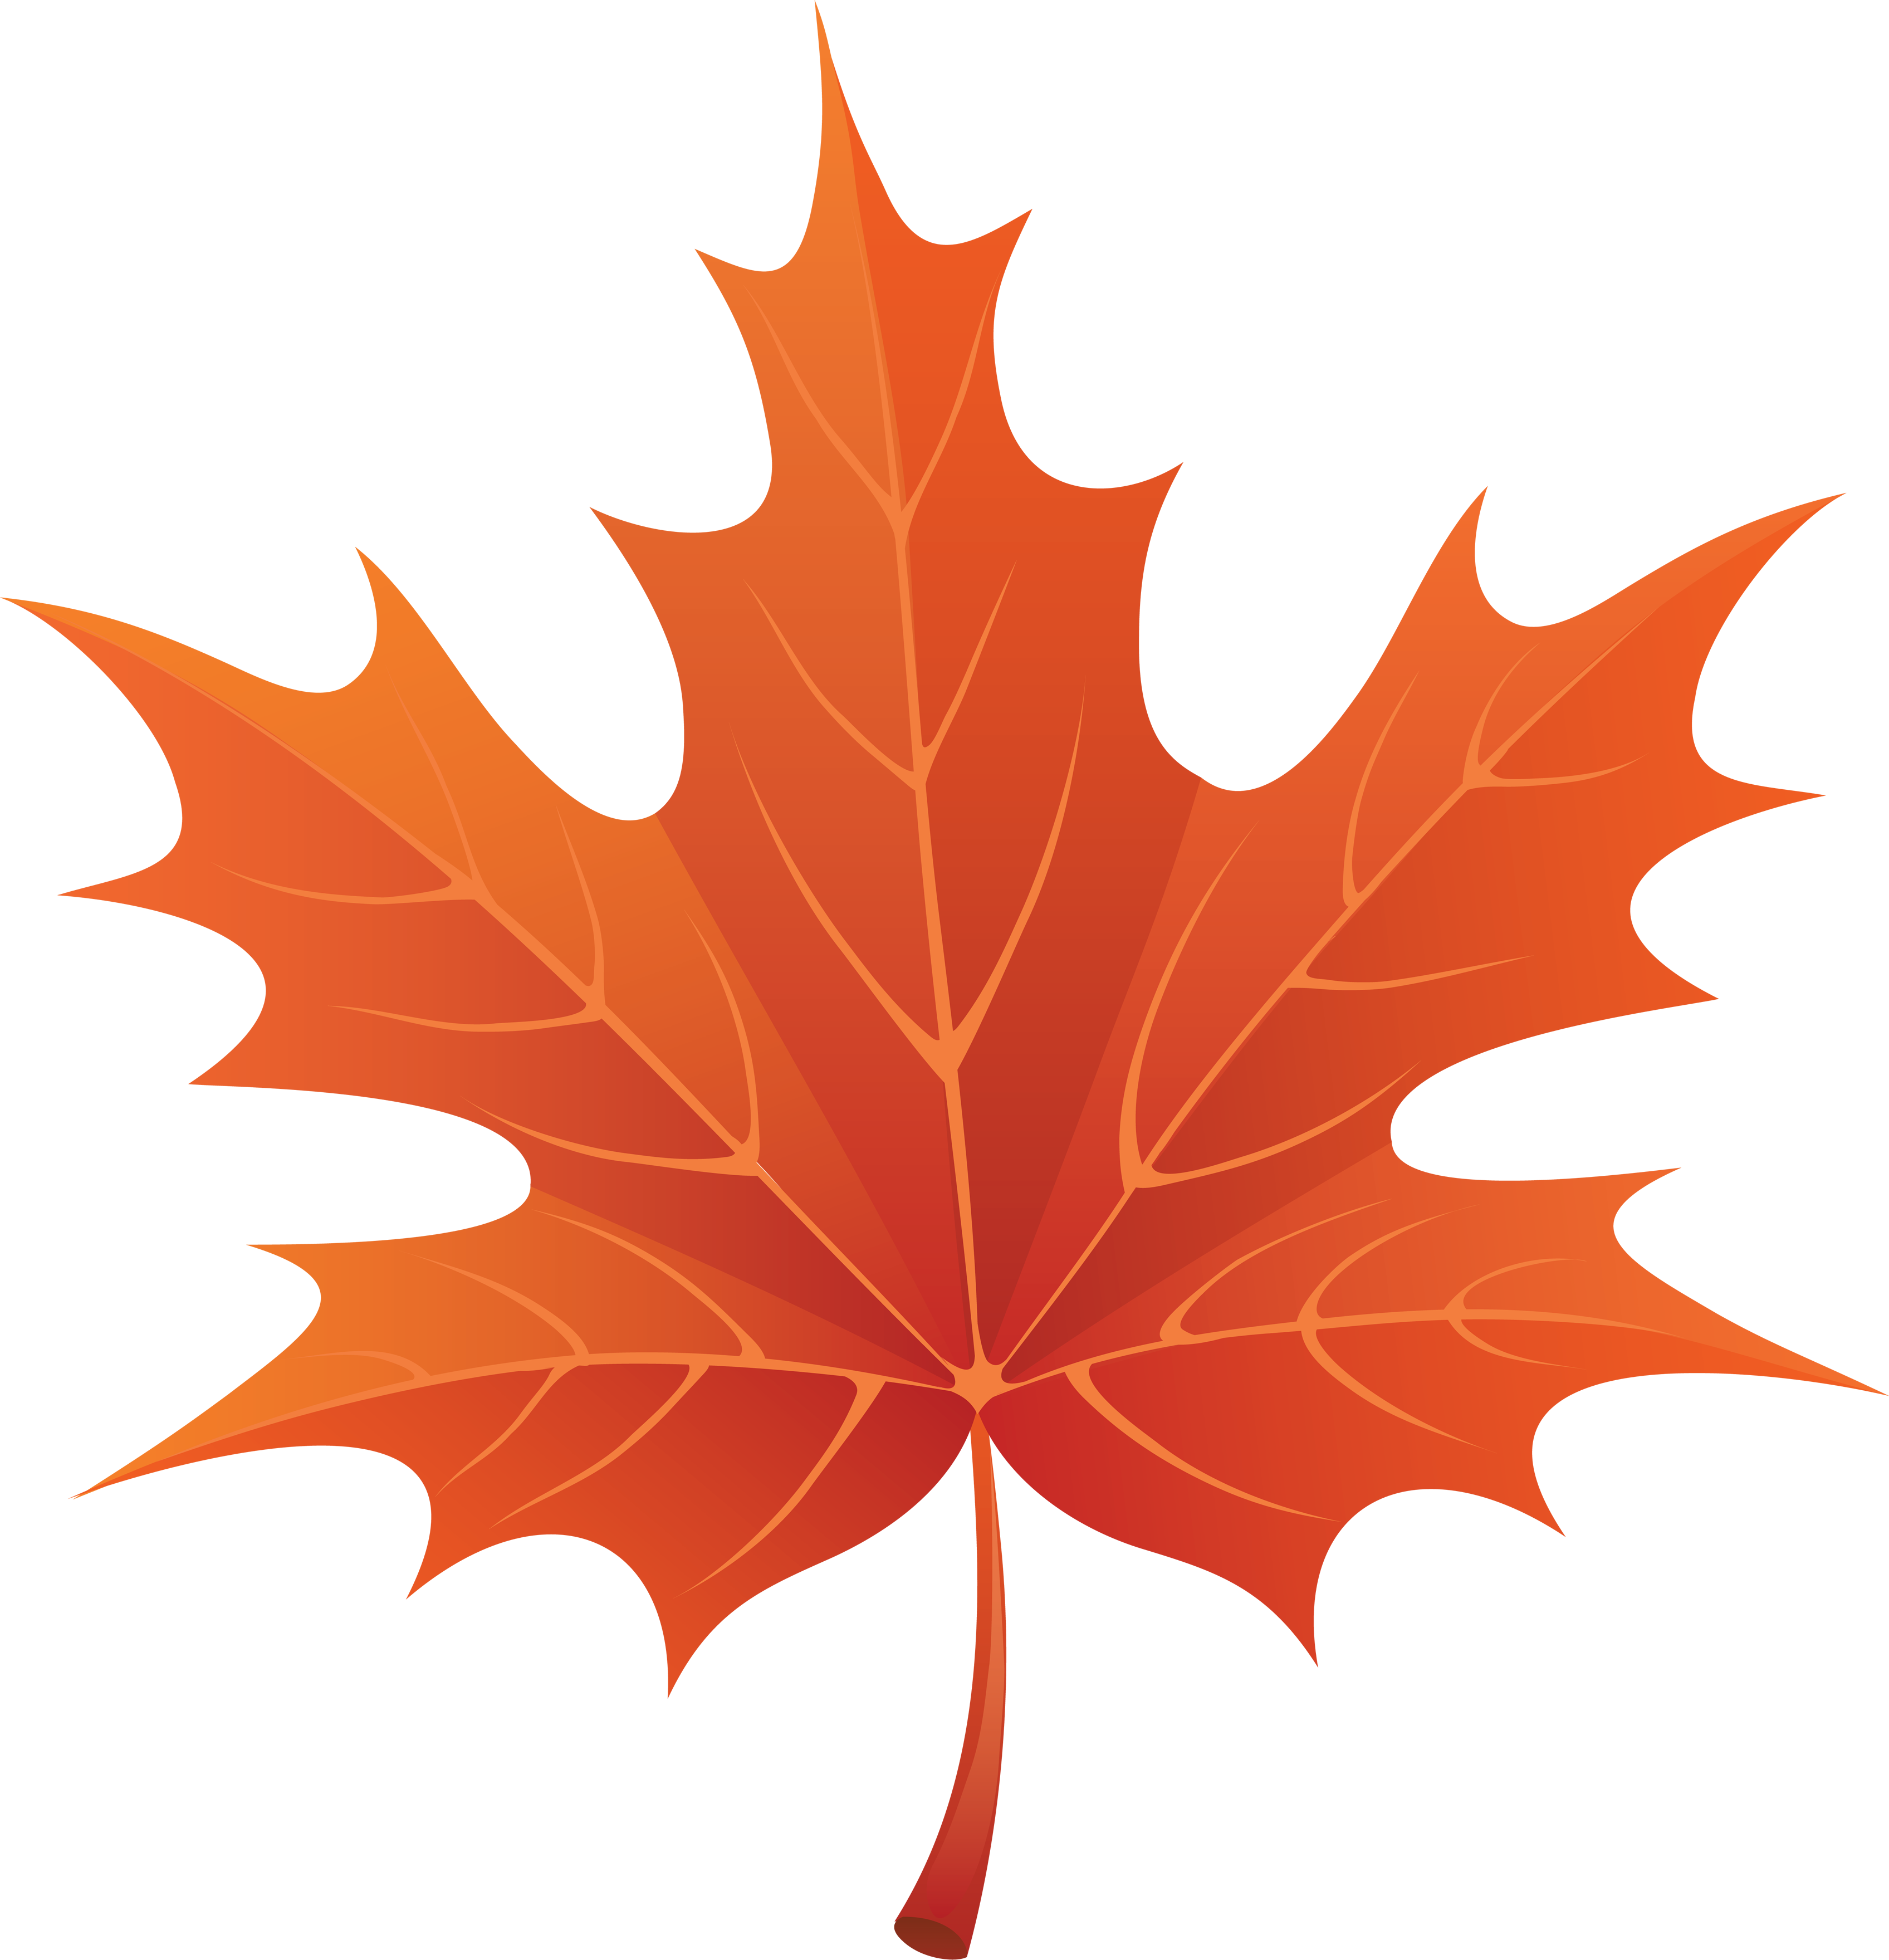 jpg download Leaves clipart. Fall autumn images free